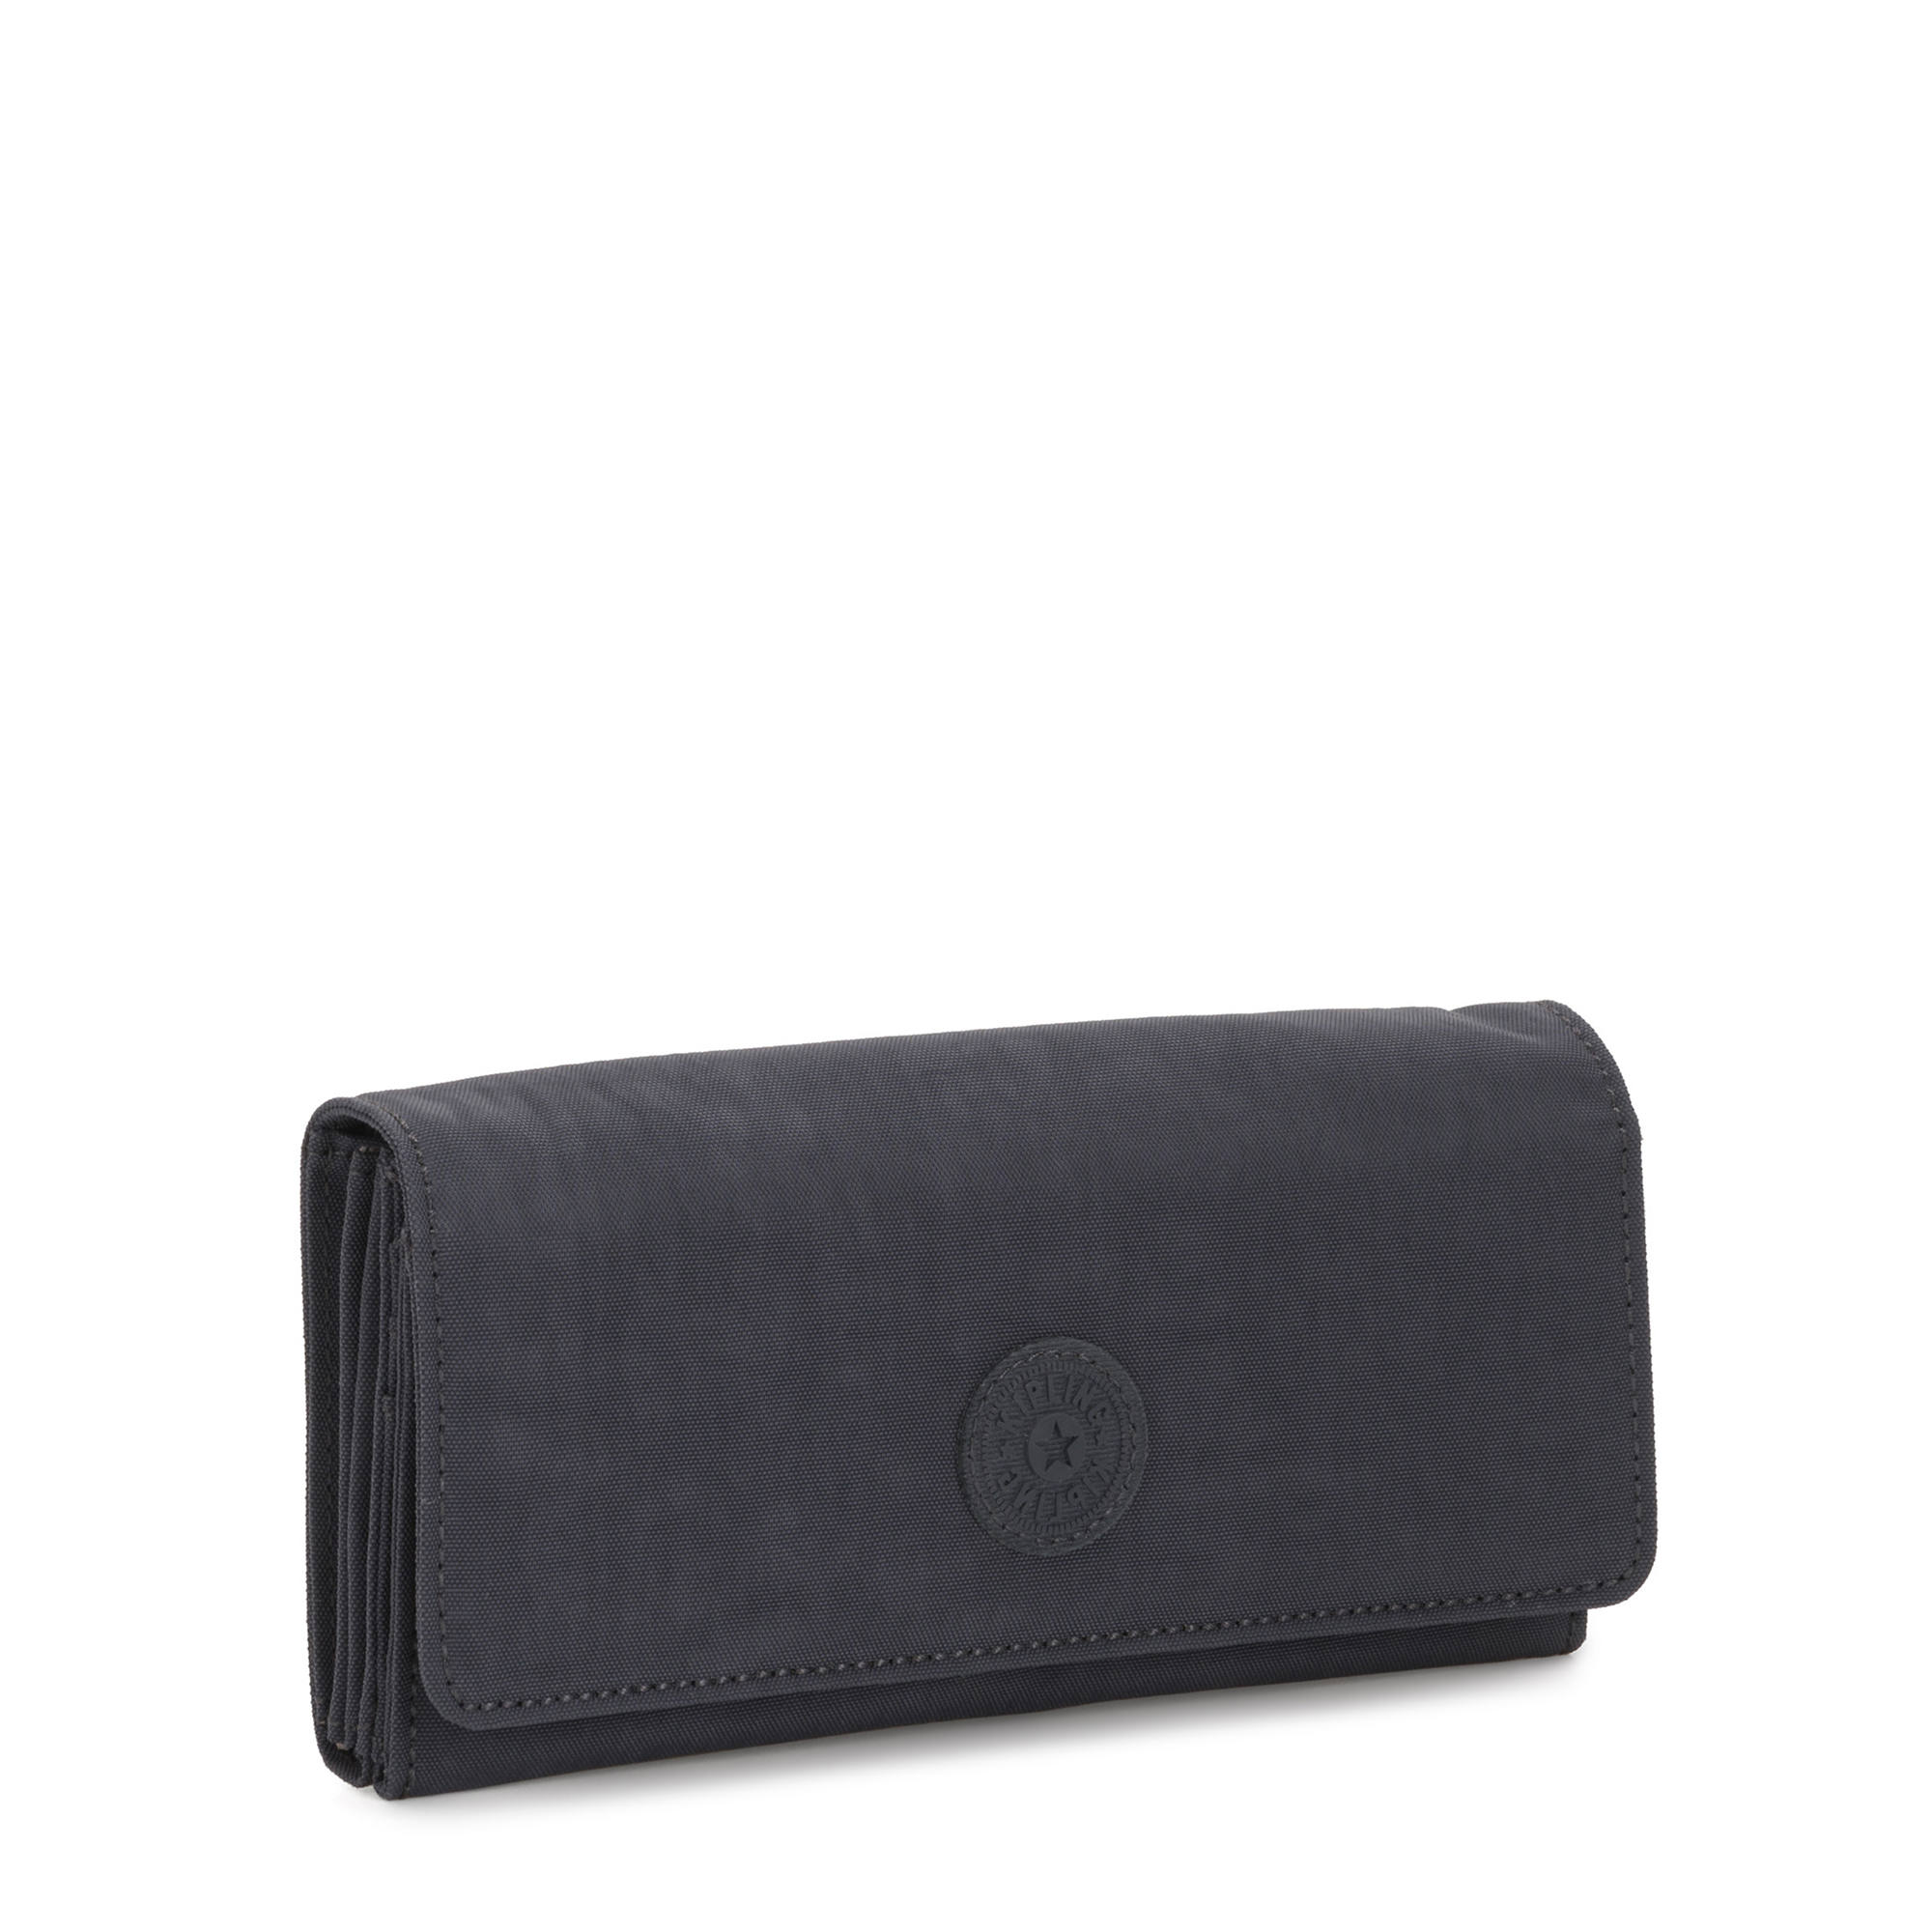 Kipling-New-Teddi-Printed-Snap-Wallet thumbnail 8